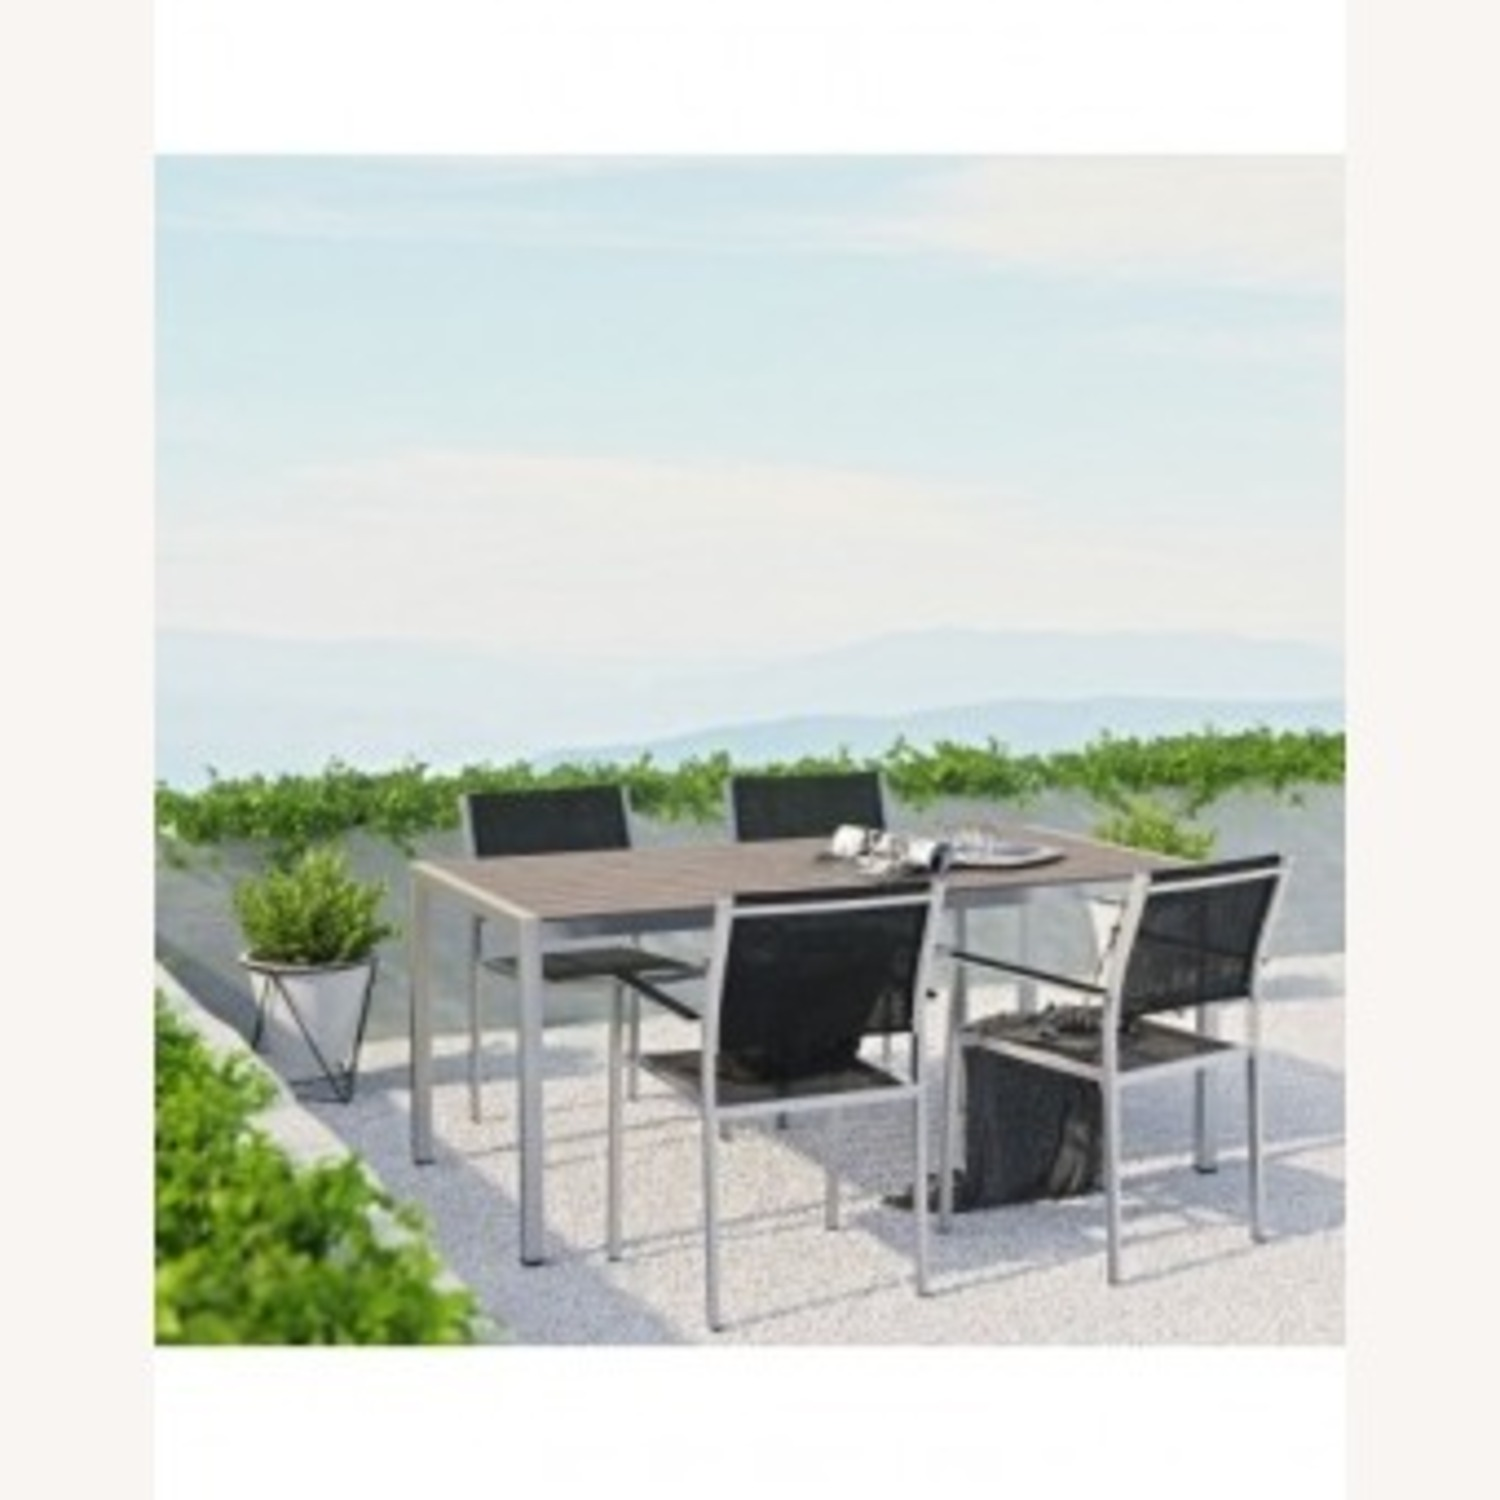 5-Piece Dining Set In Black Plastic Wood Accent - image-6